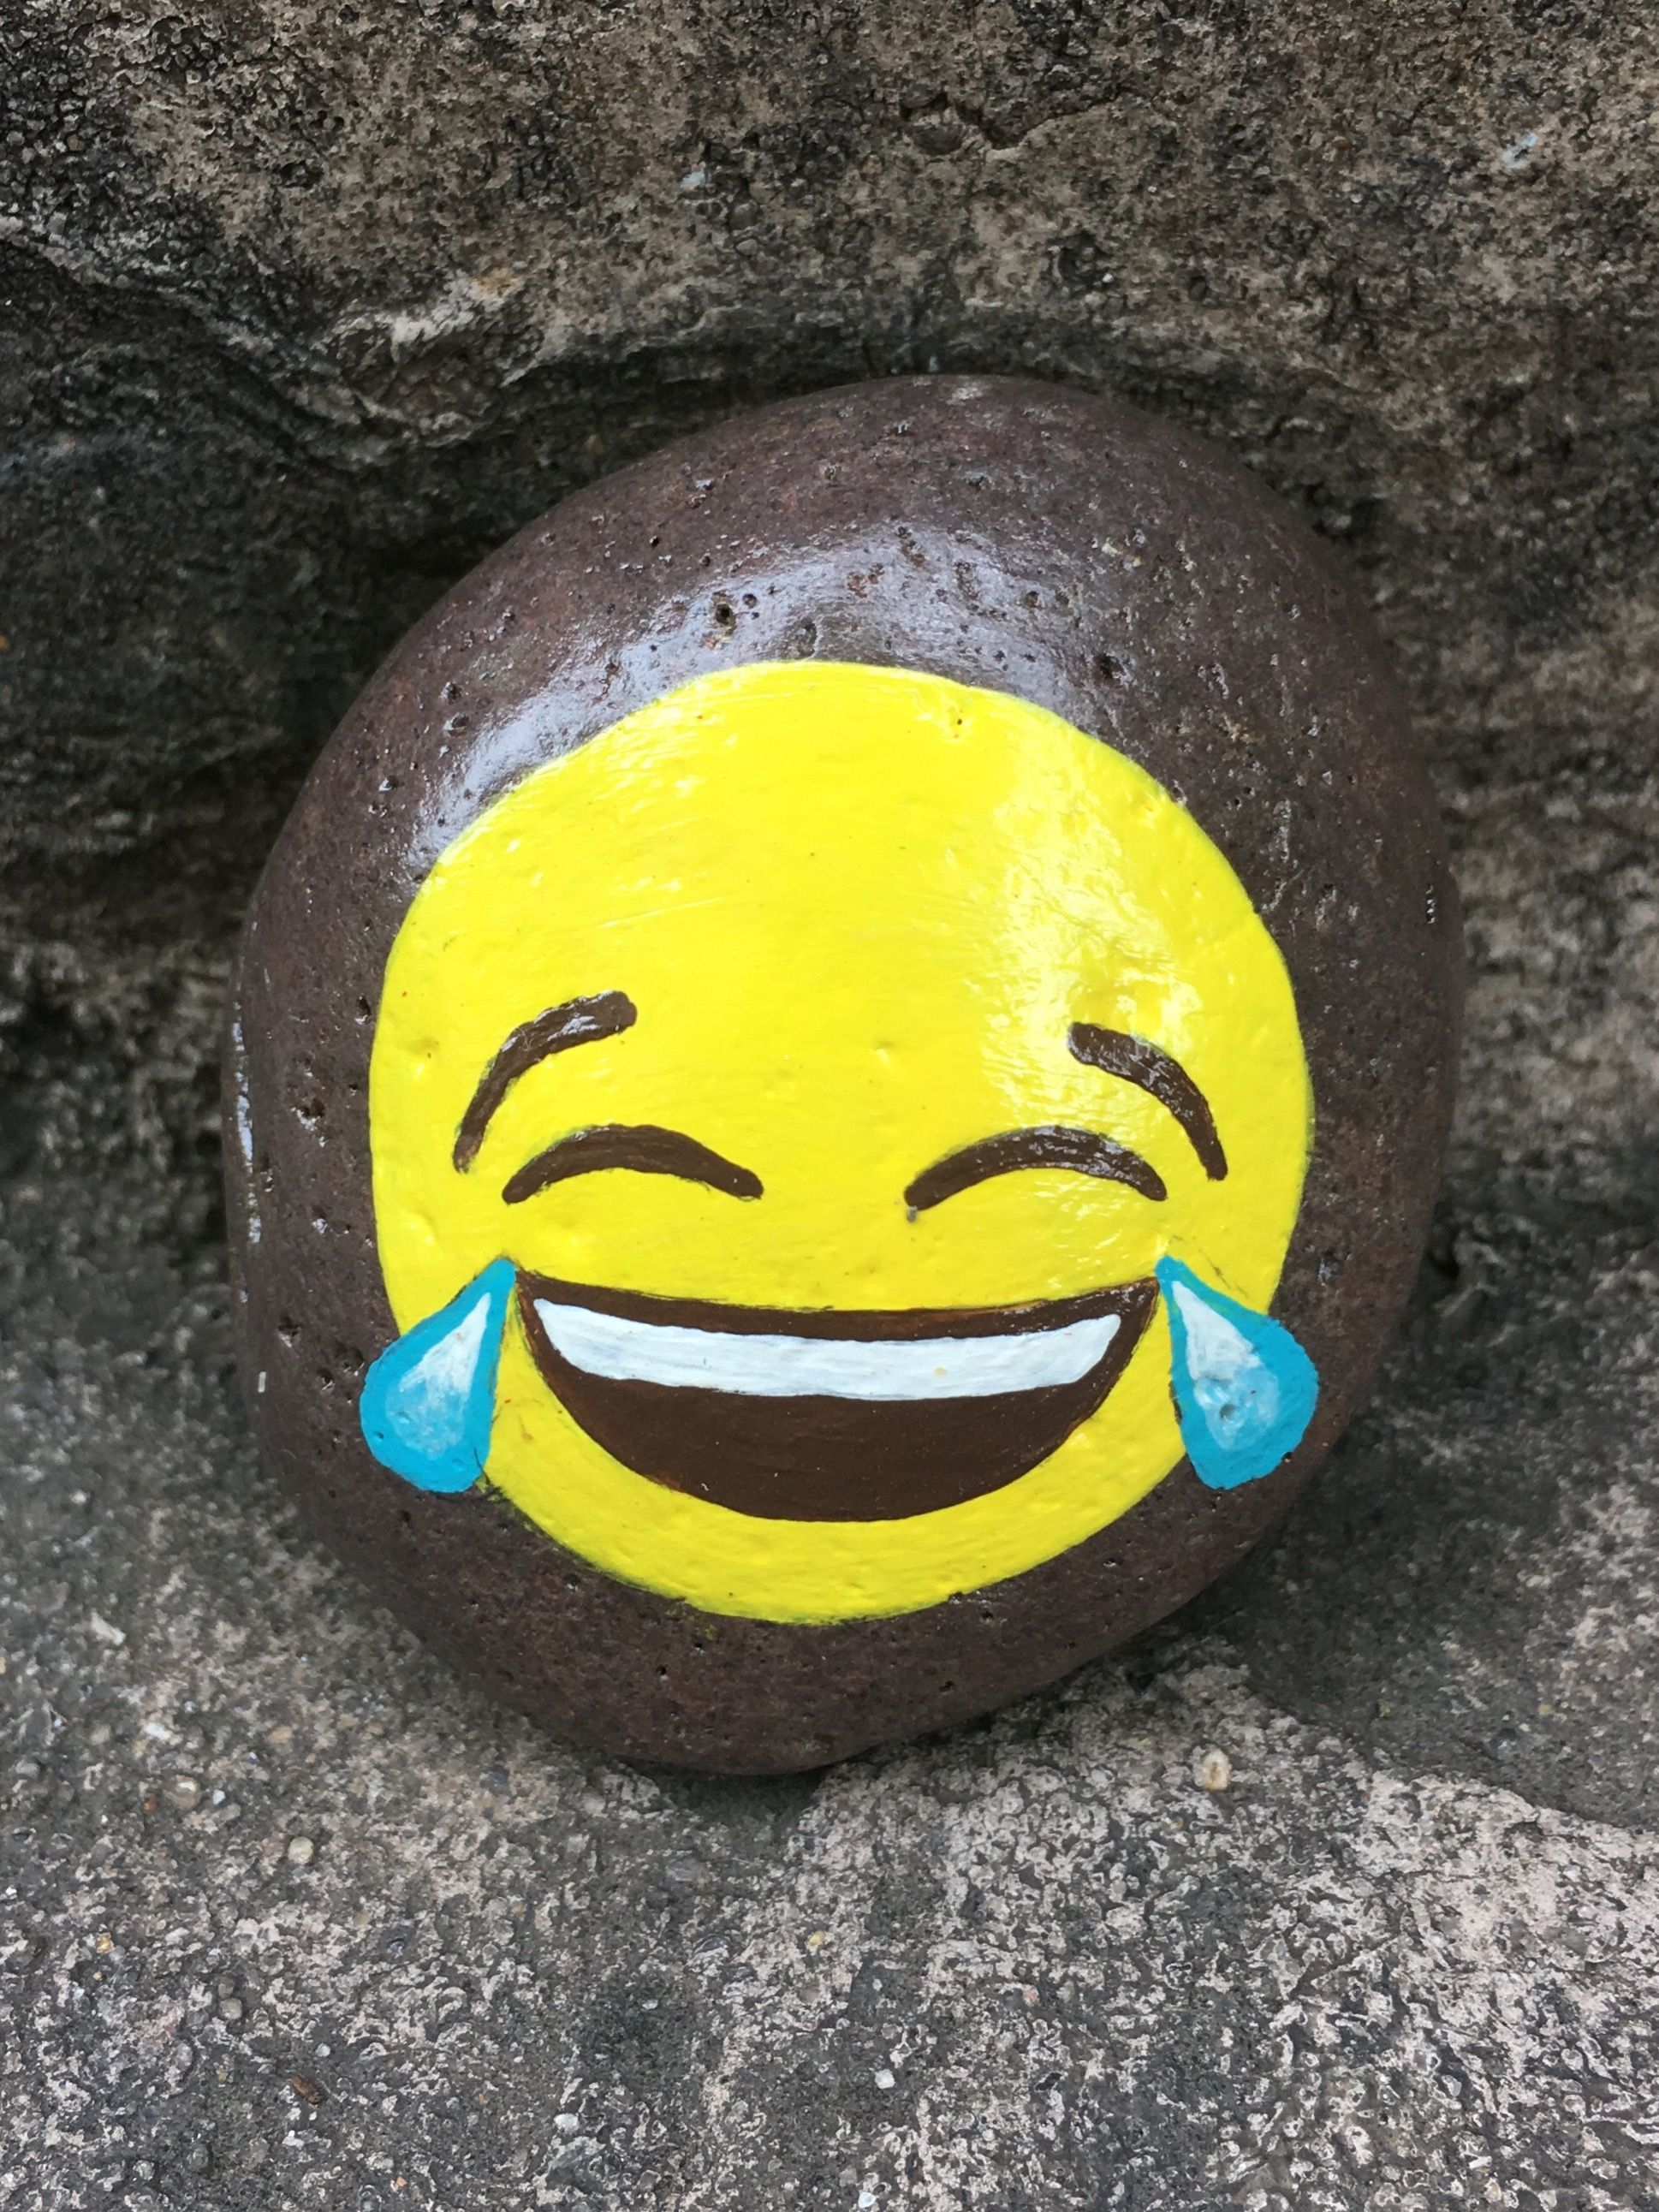 Painted Emoji Rock By Christa Keeler